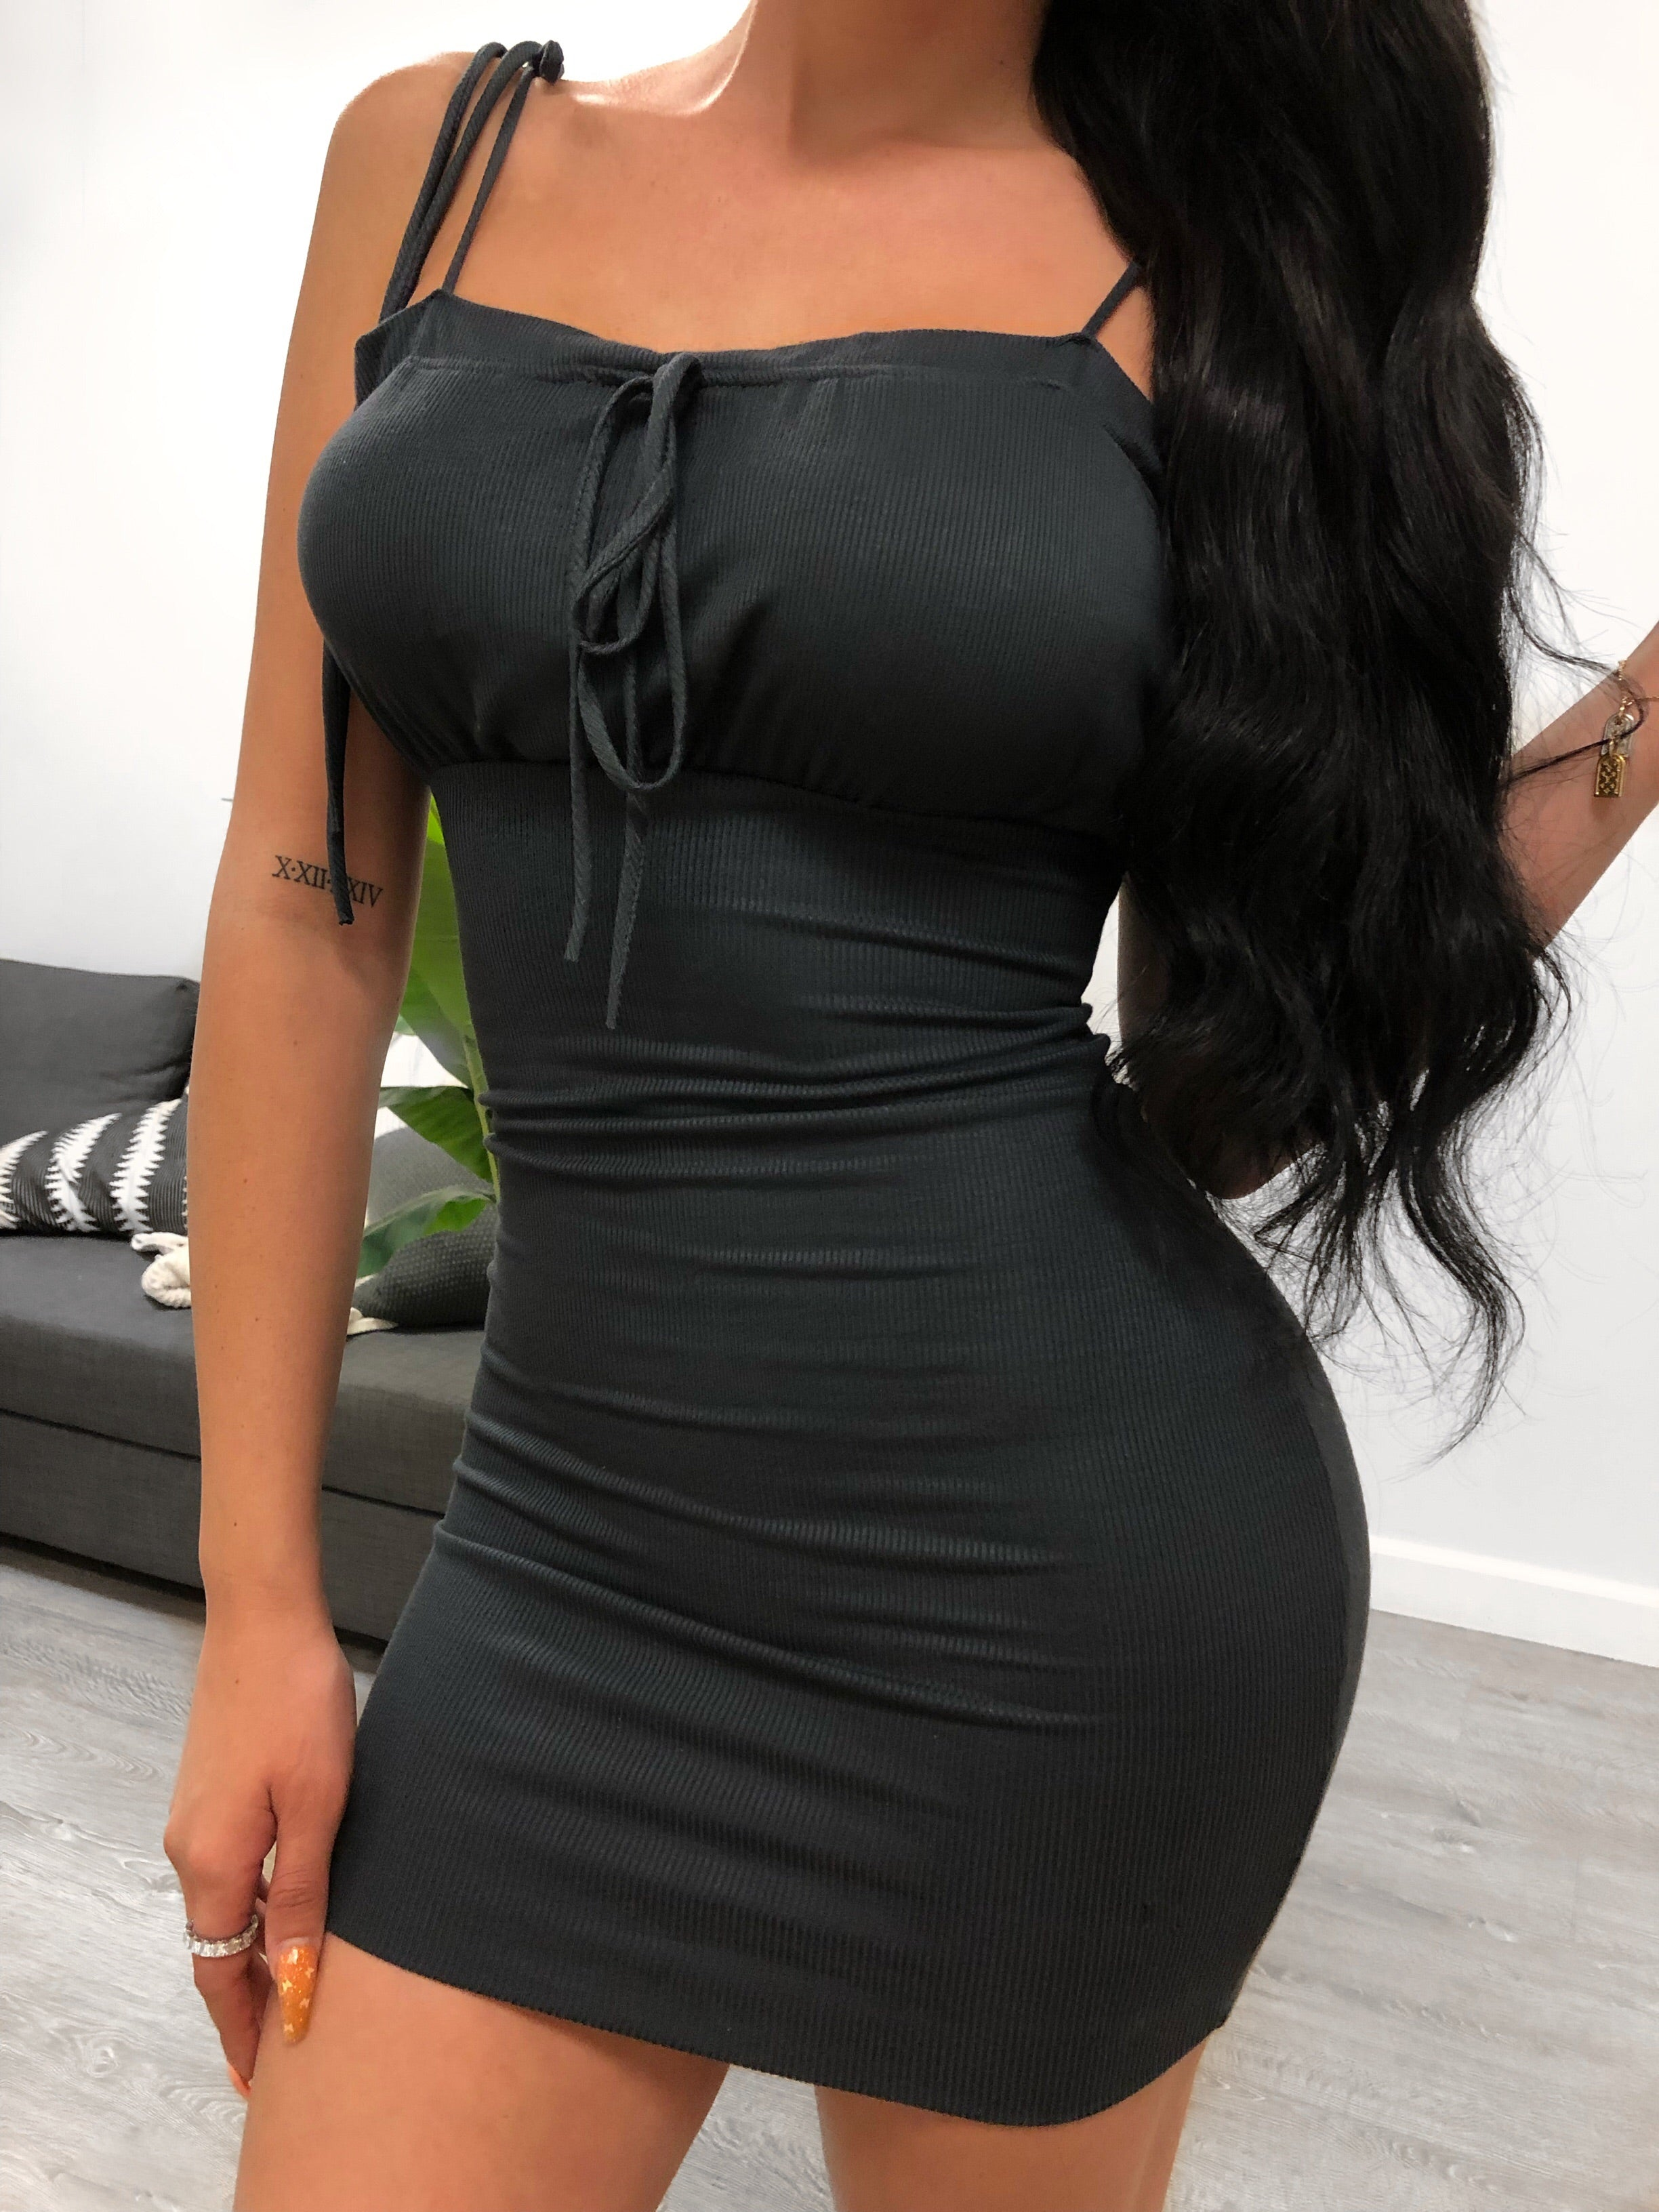 charcoal spaghetti strap dress. spaghetti straps have extra string to tie a bow. no cleavage visible. extra string at upper cleavage to tie a bow for style. dress length ends at mid thigh